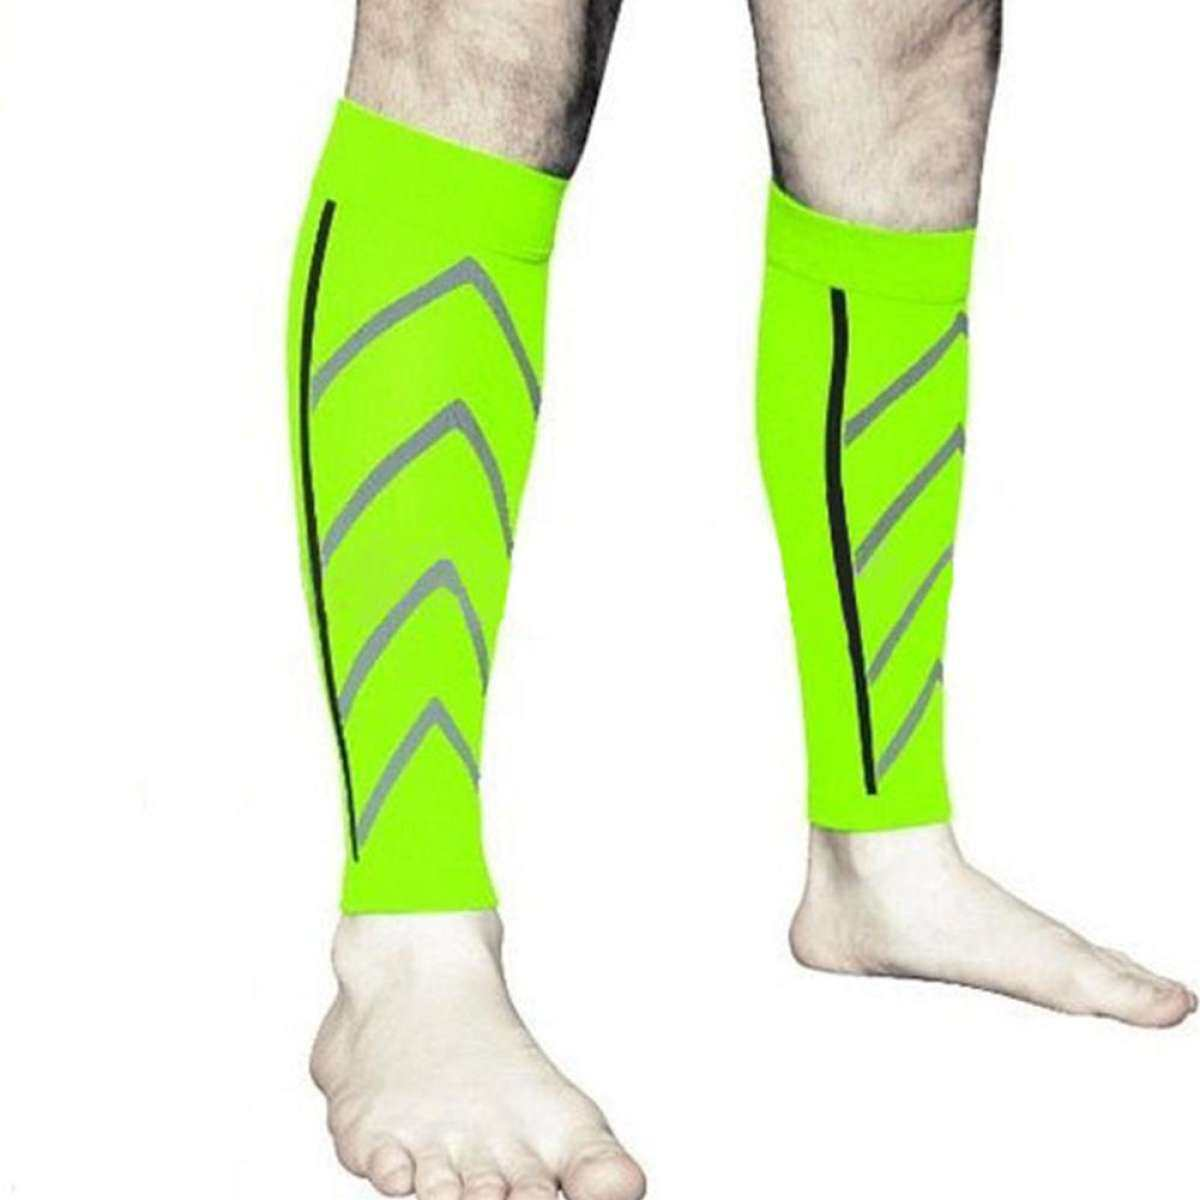 LumiParty Sports Running Fluorescent Shank Protective Cover Gradient Compression Stockings Stovepipe Pressure Covers Size:Free size